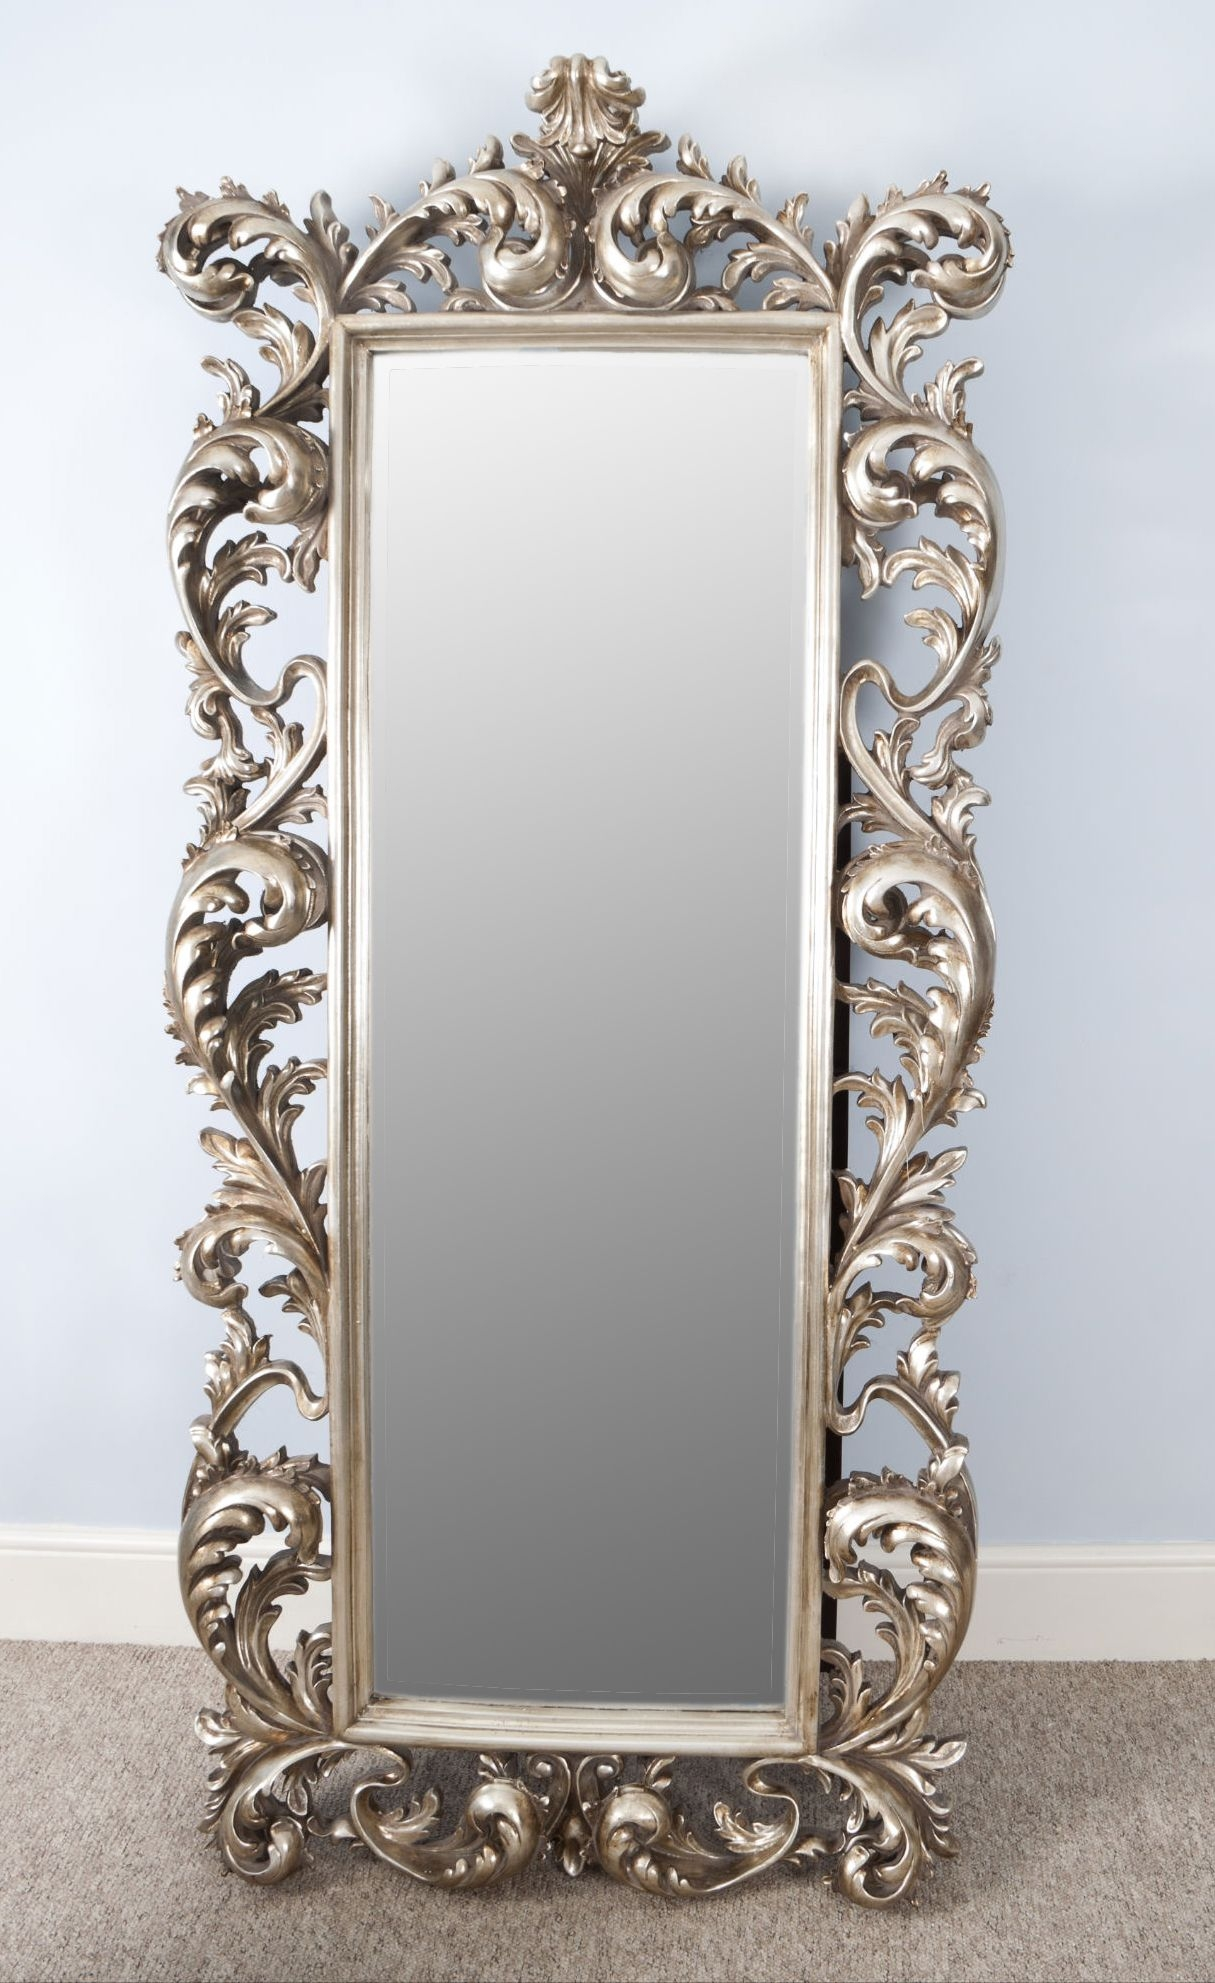 Wondrous Old Oval Mirror Antique Cheval Wall Mirror Likewise Grey Throughout Antique Wall Mirrors For Sale (Image 15 of 15)